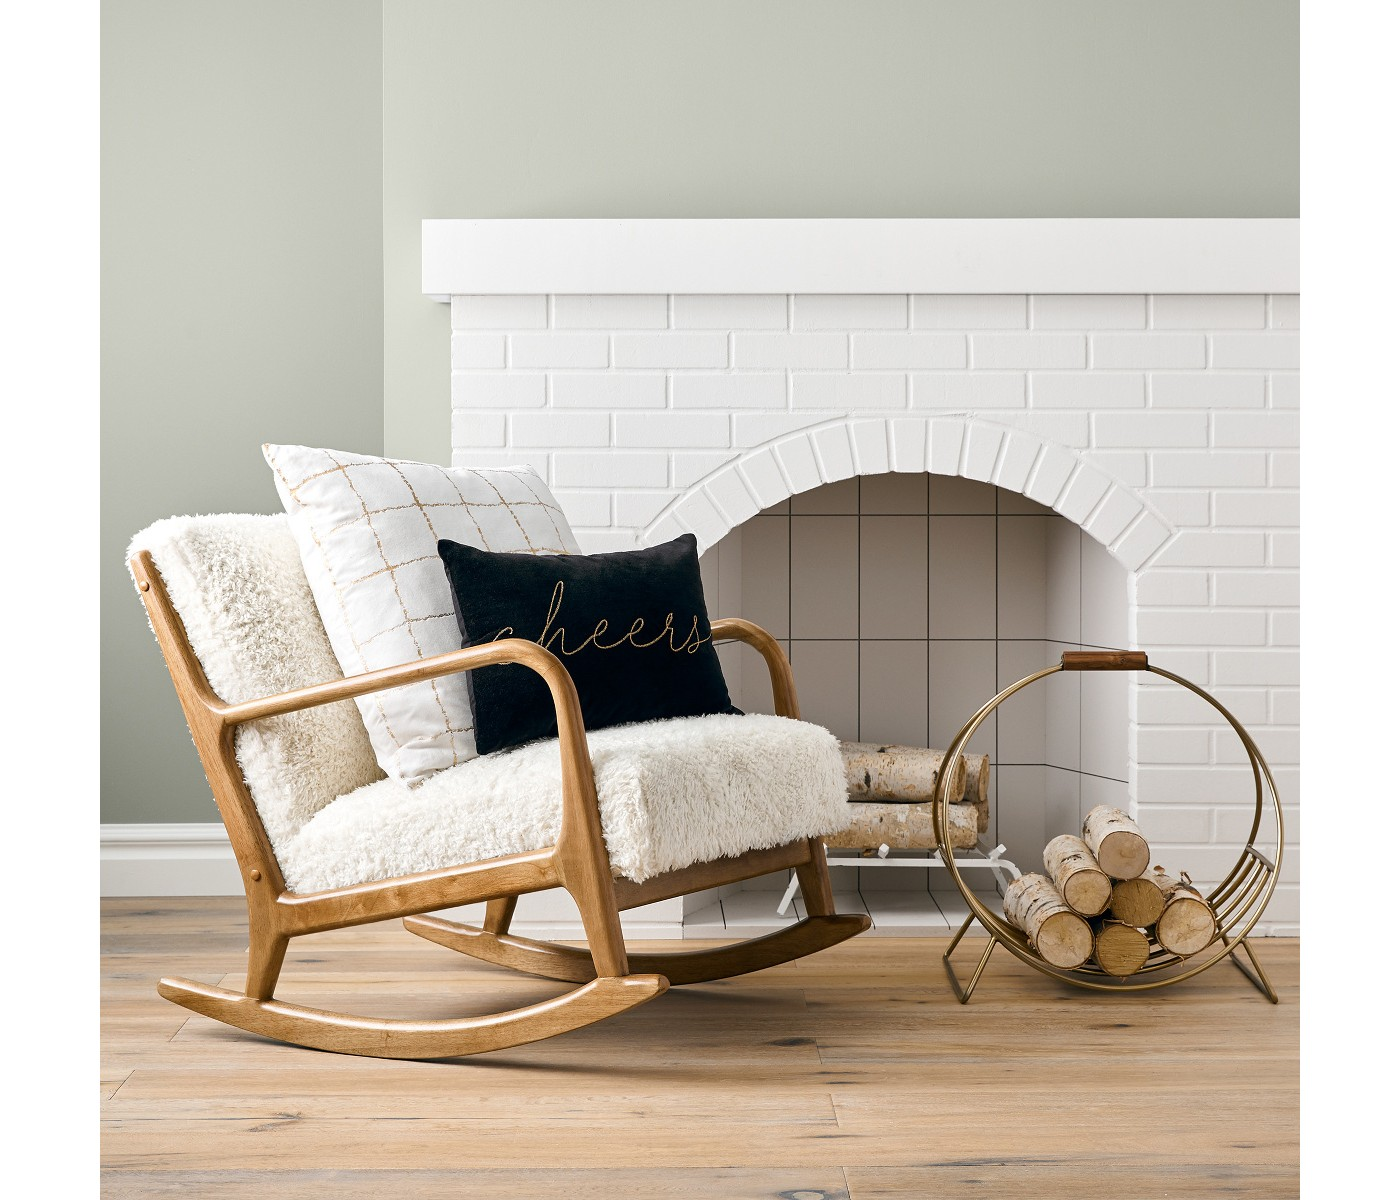 Emily Henderson Target Sherpa Rocking Chair